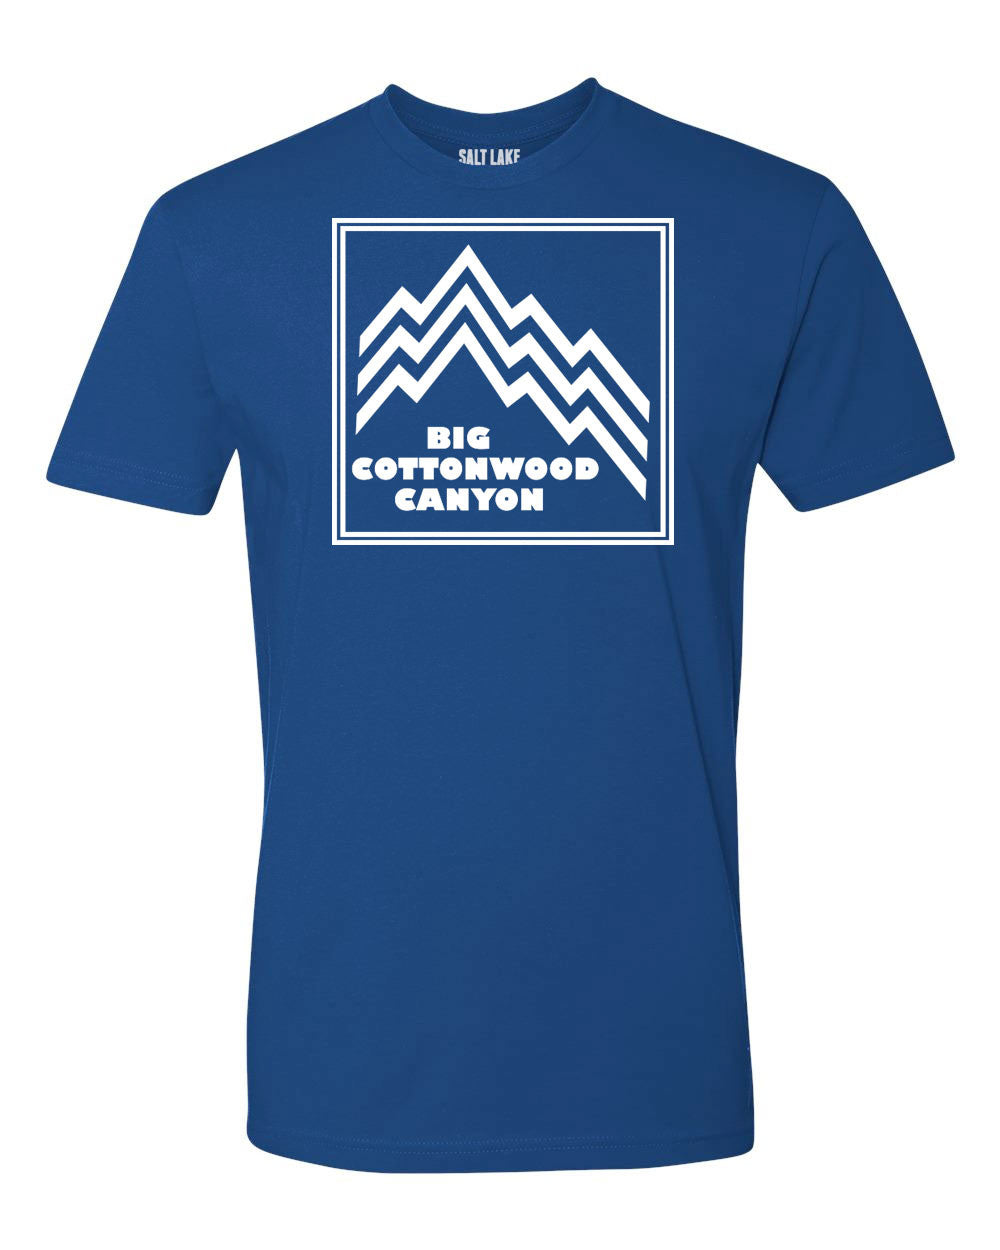 Big Cottonwood Canyon T-shirt